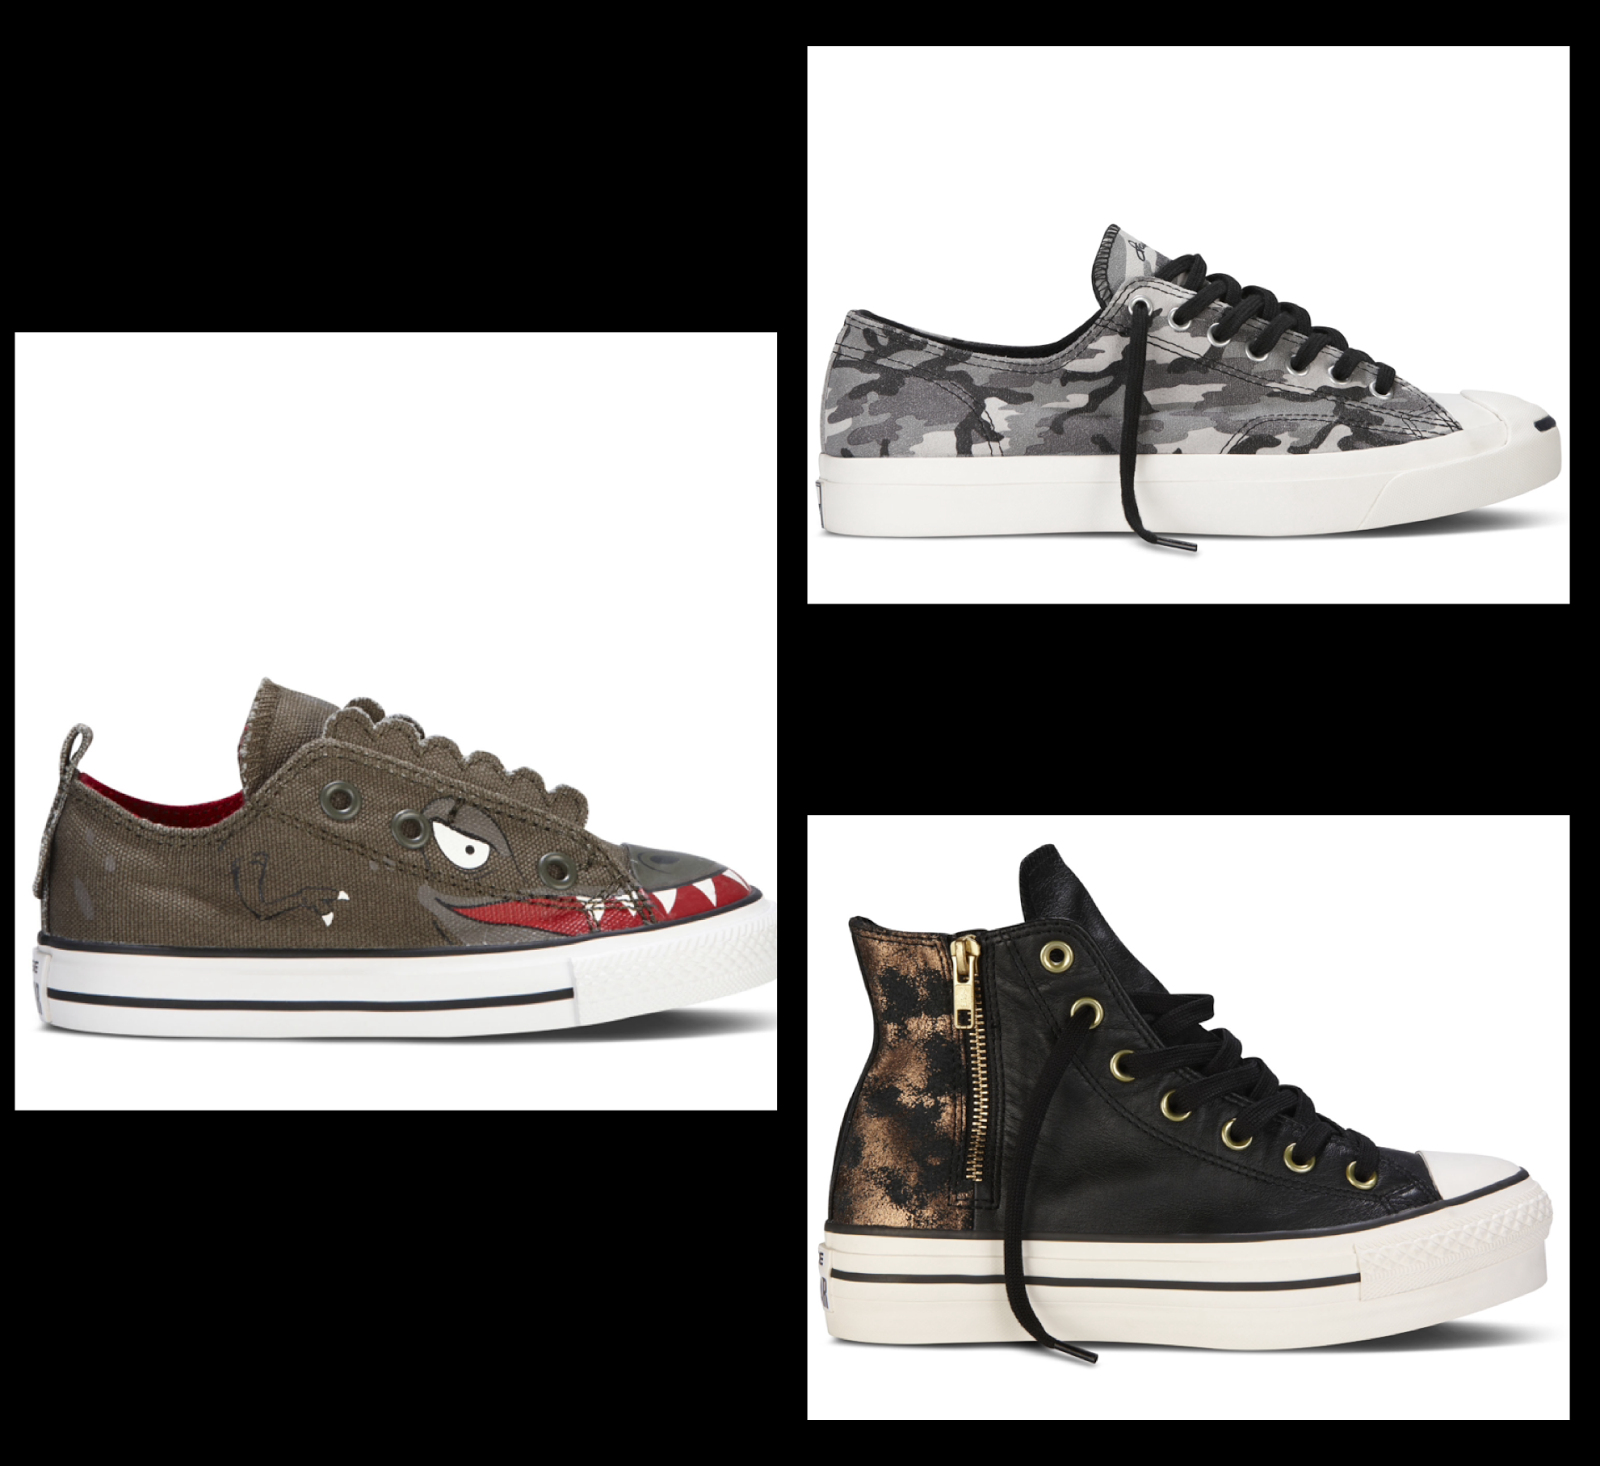 fbec6493abf9 Another treat for us at Converse  the self design option on their website  to customize your shoes! Enjoy this sneak peek into the holiday collection  and get ...